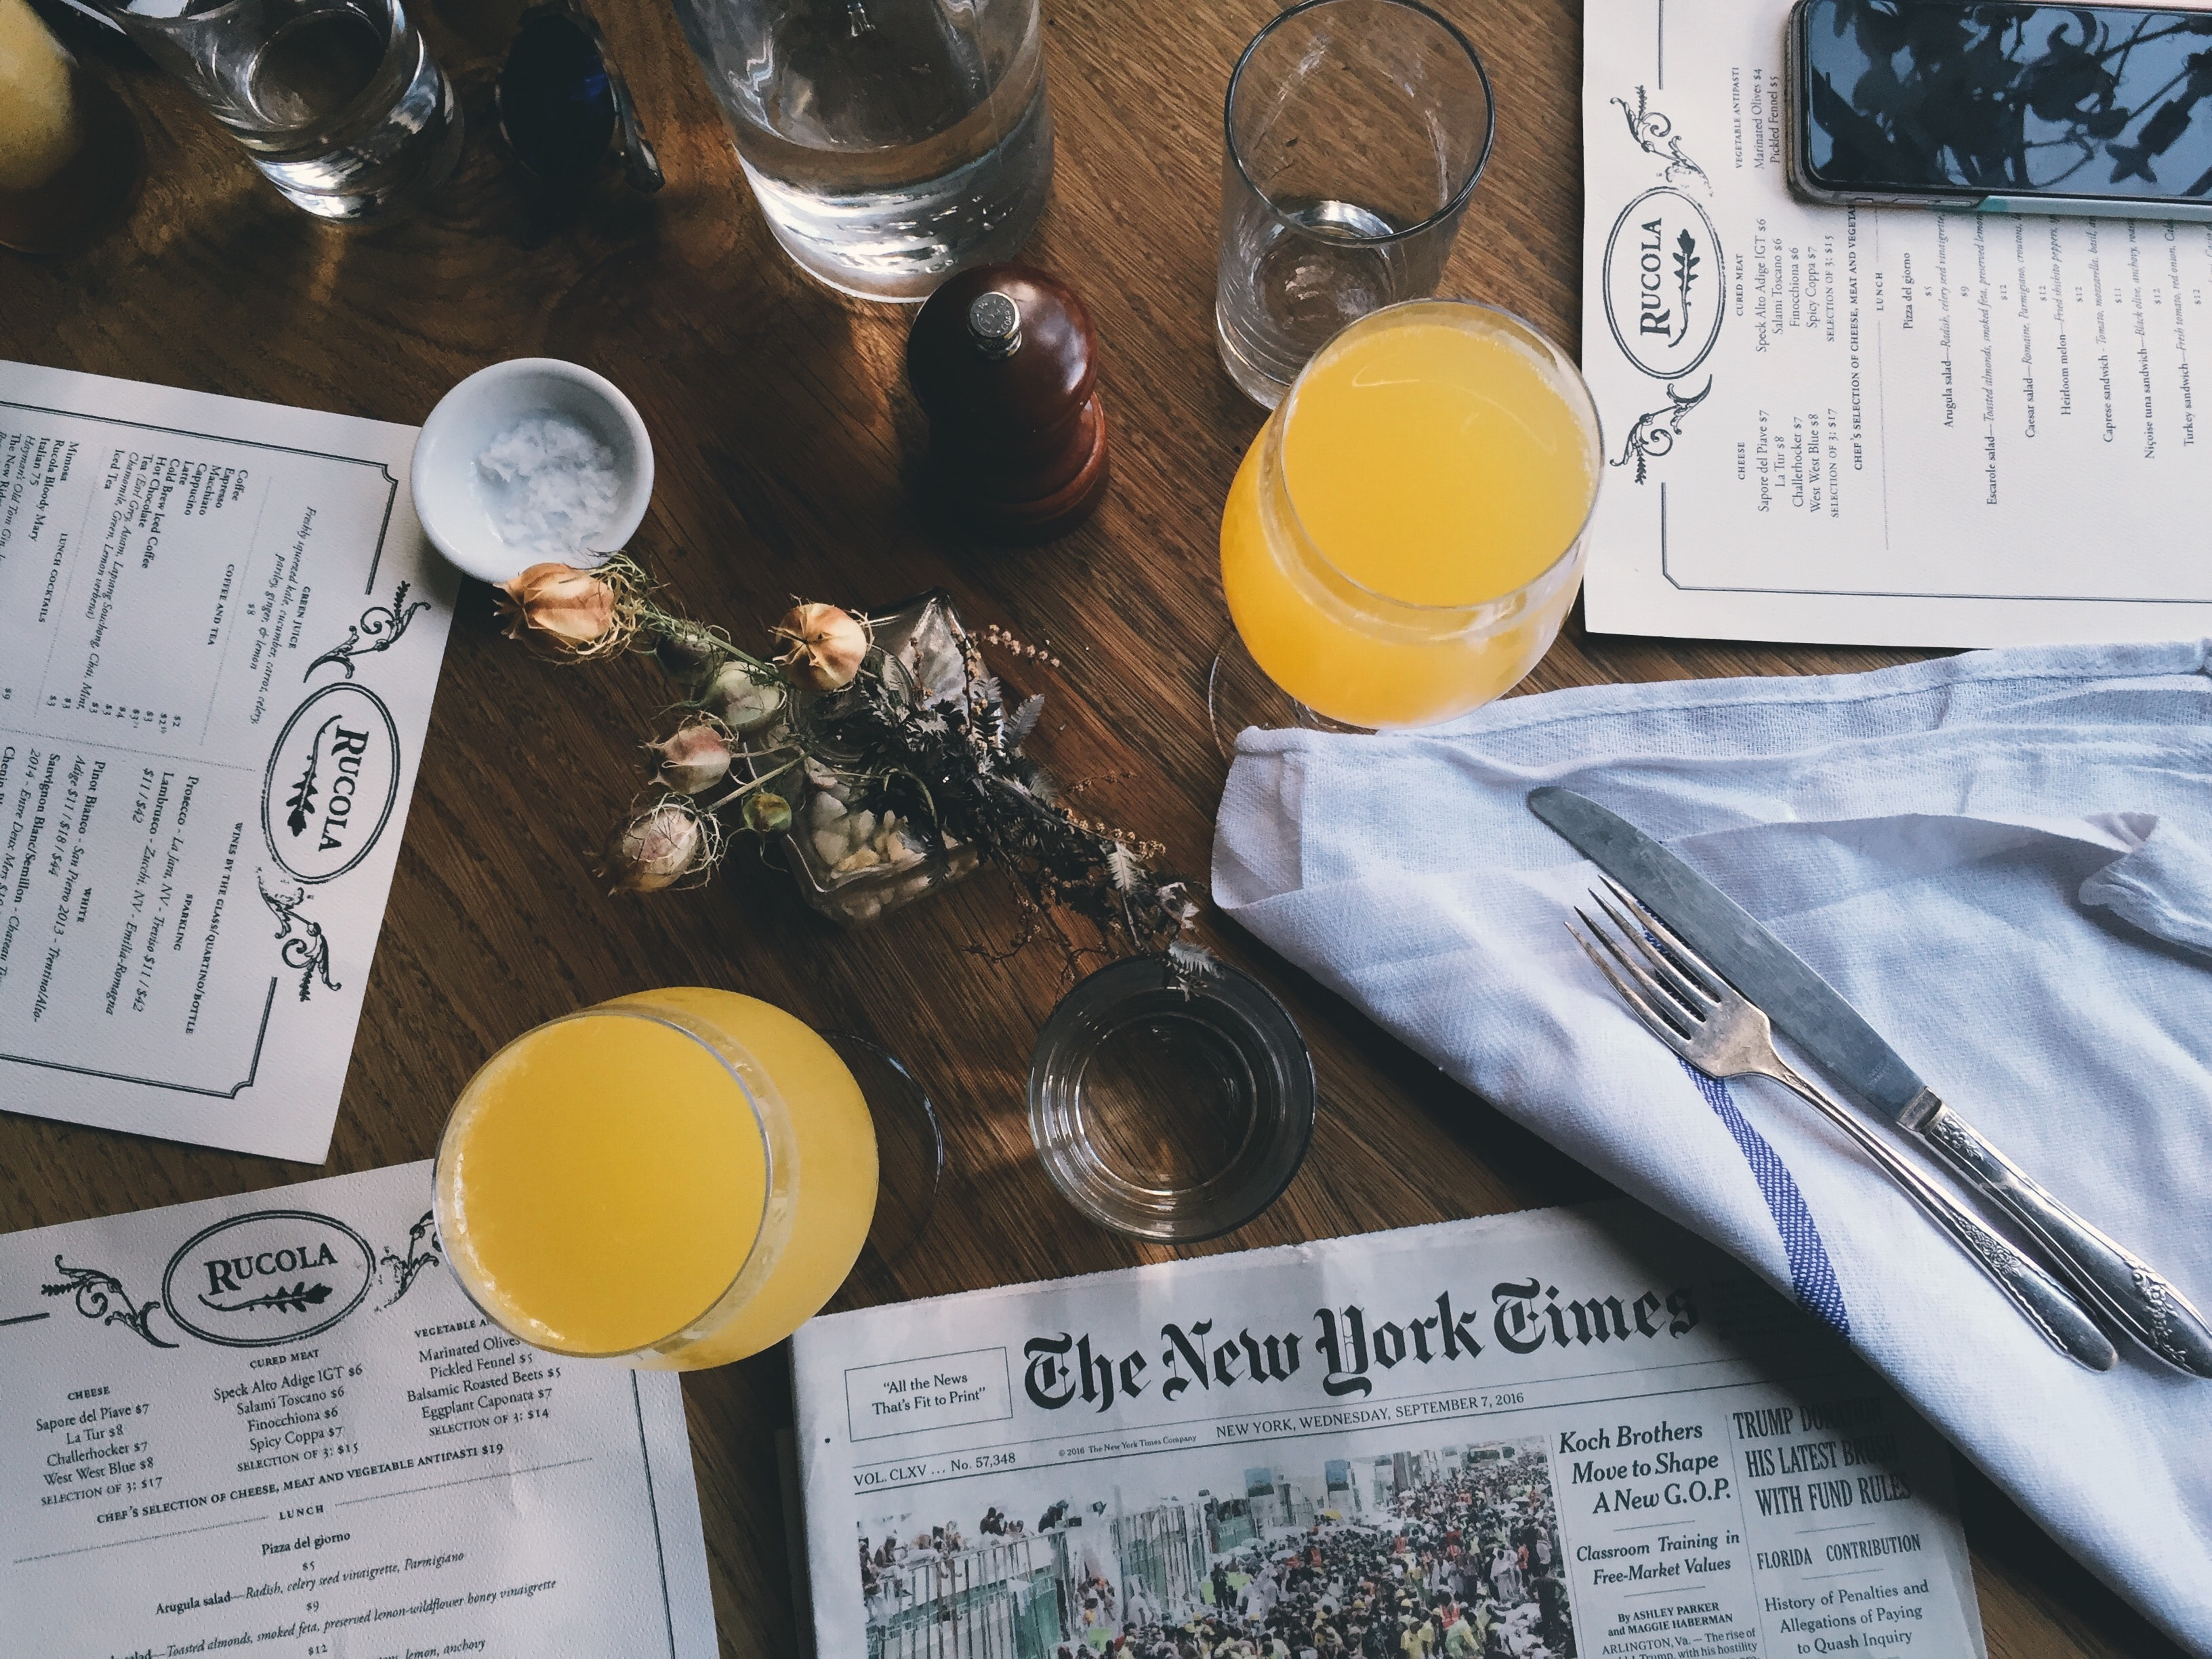 grey New York Time newspaper on table together with juice glasses